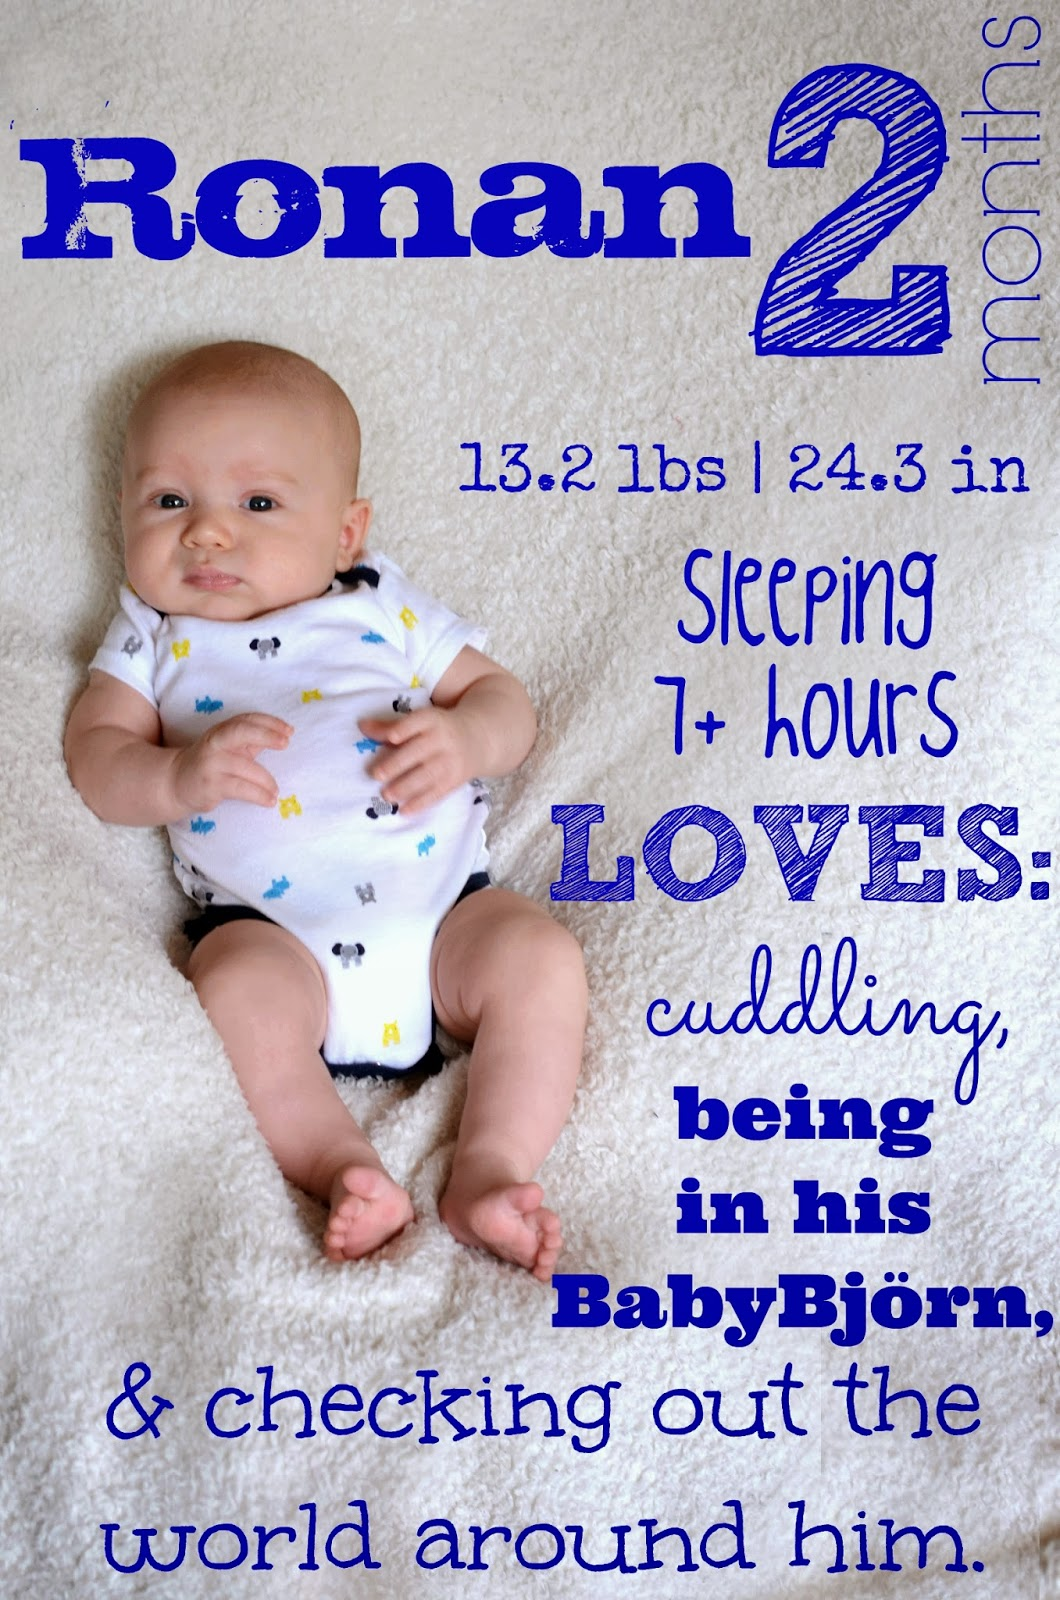 On average, a 3 month old baby is usually about 23 to 24 inches long and weighs around 12 to 14 pounds. Keep in mind these are only estimates, some babies are smaller and some are larger. 2.